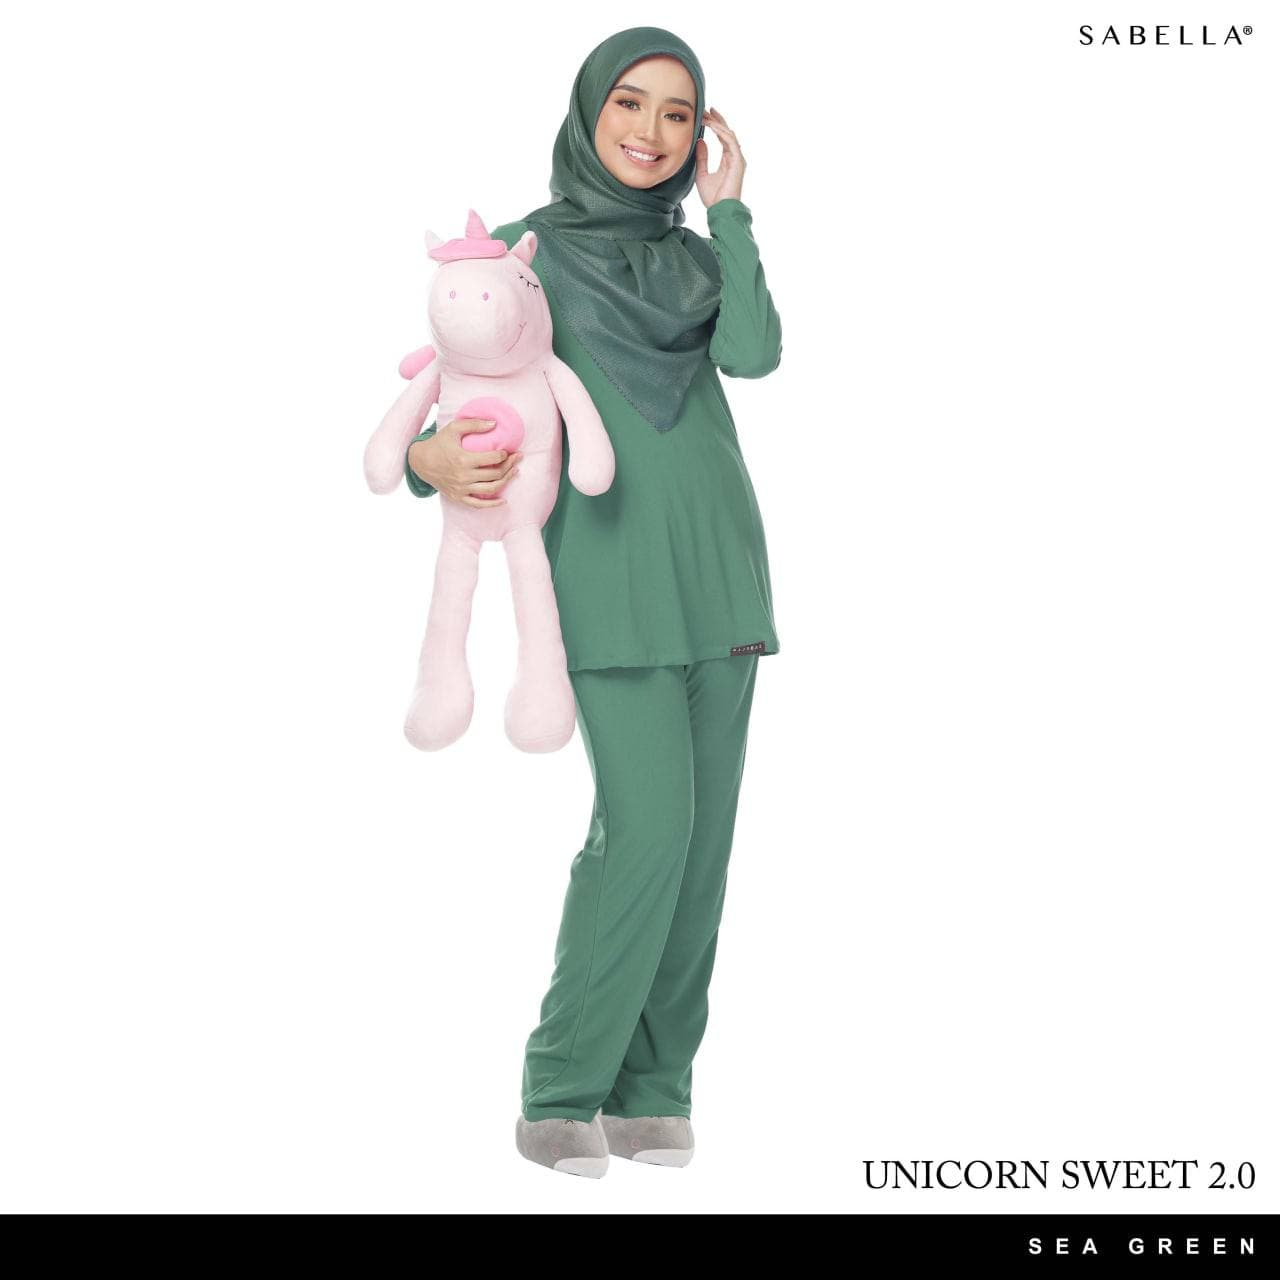 Unicorn Sweet 2.0 Sea Green